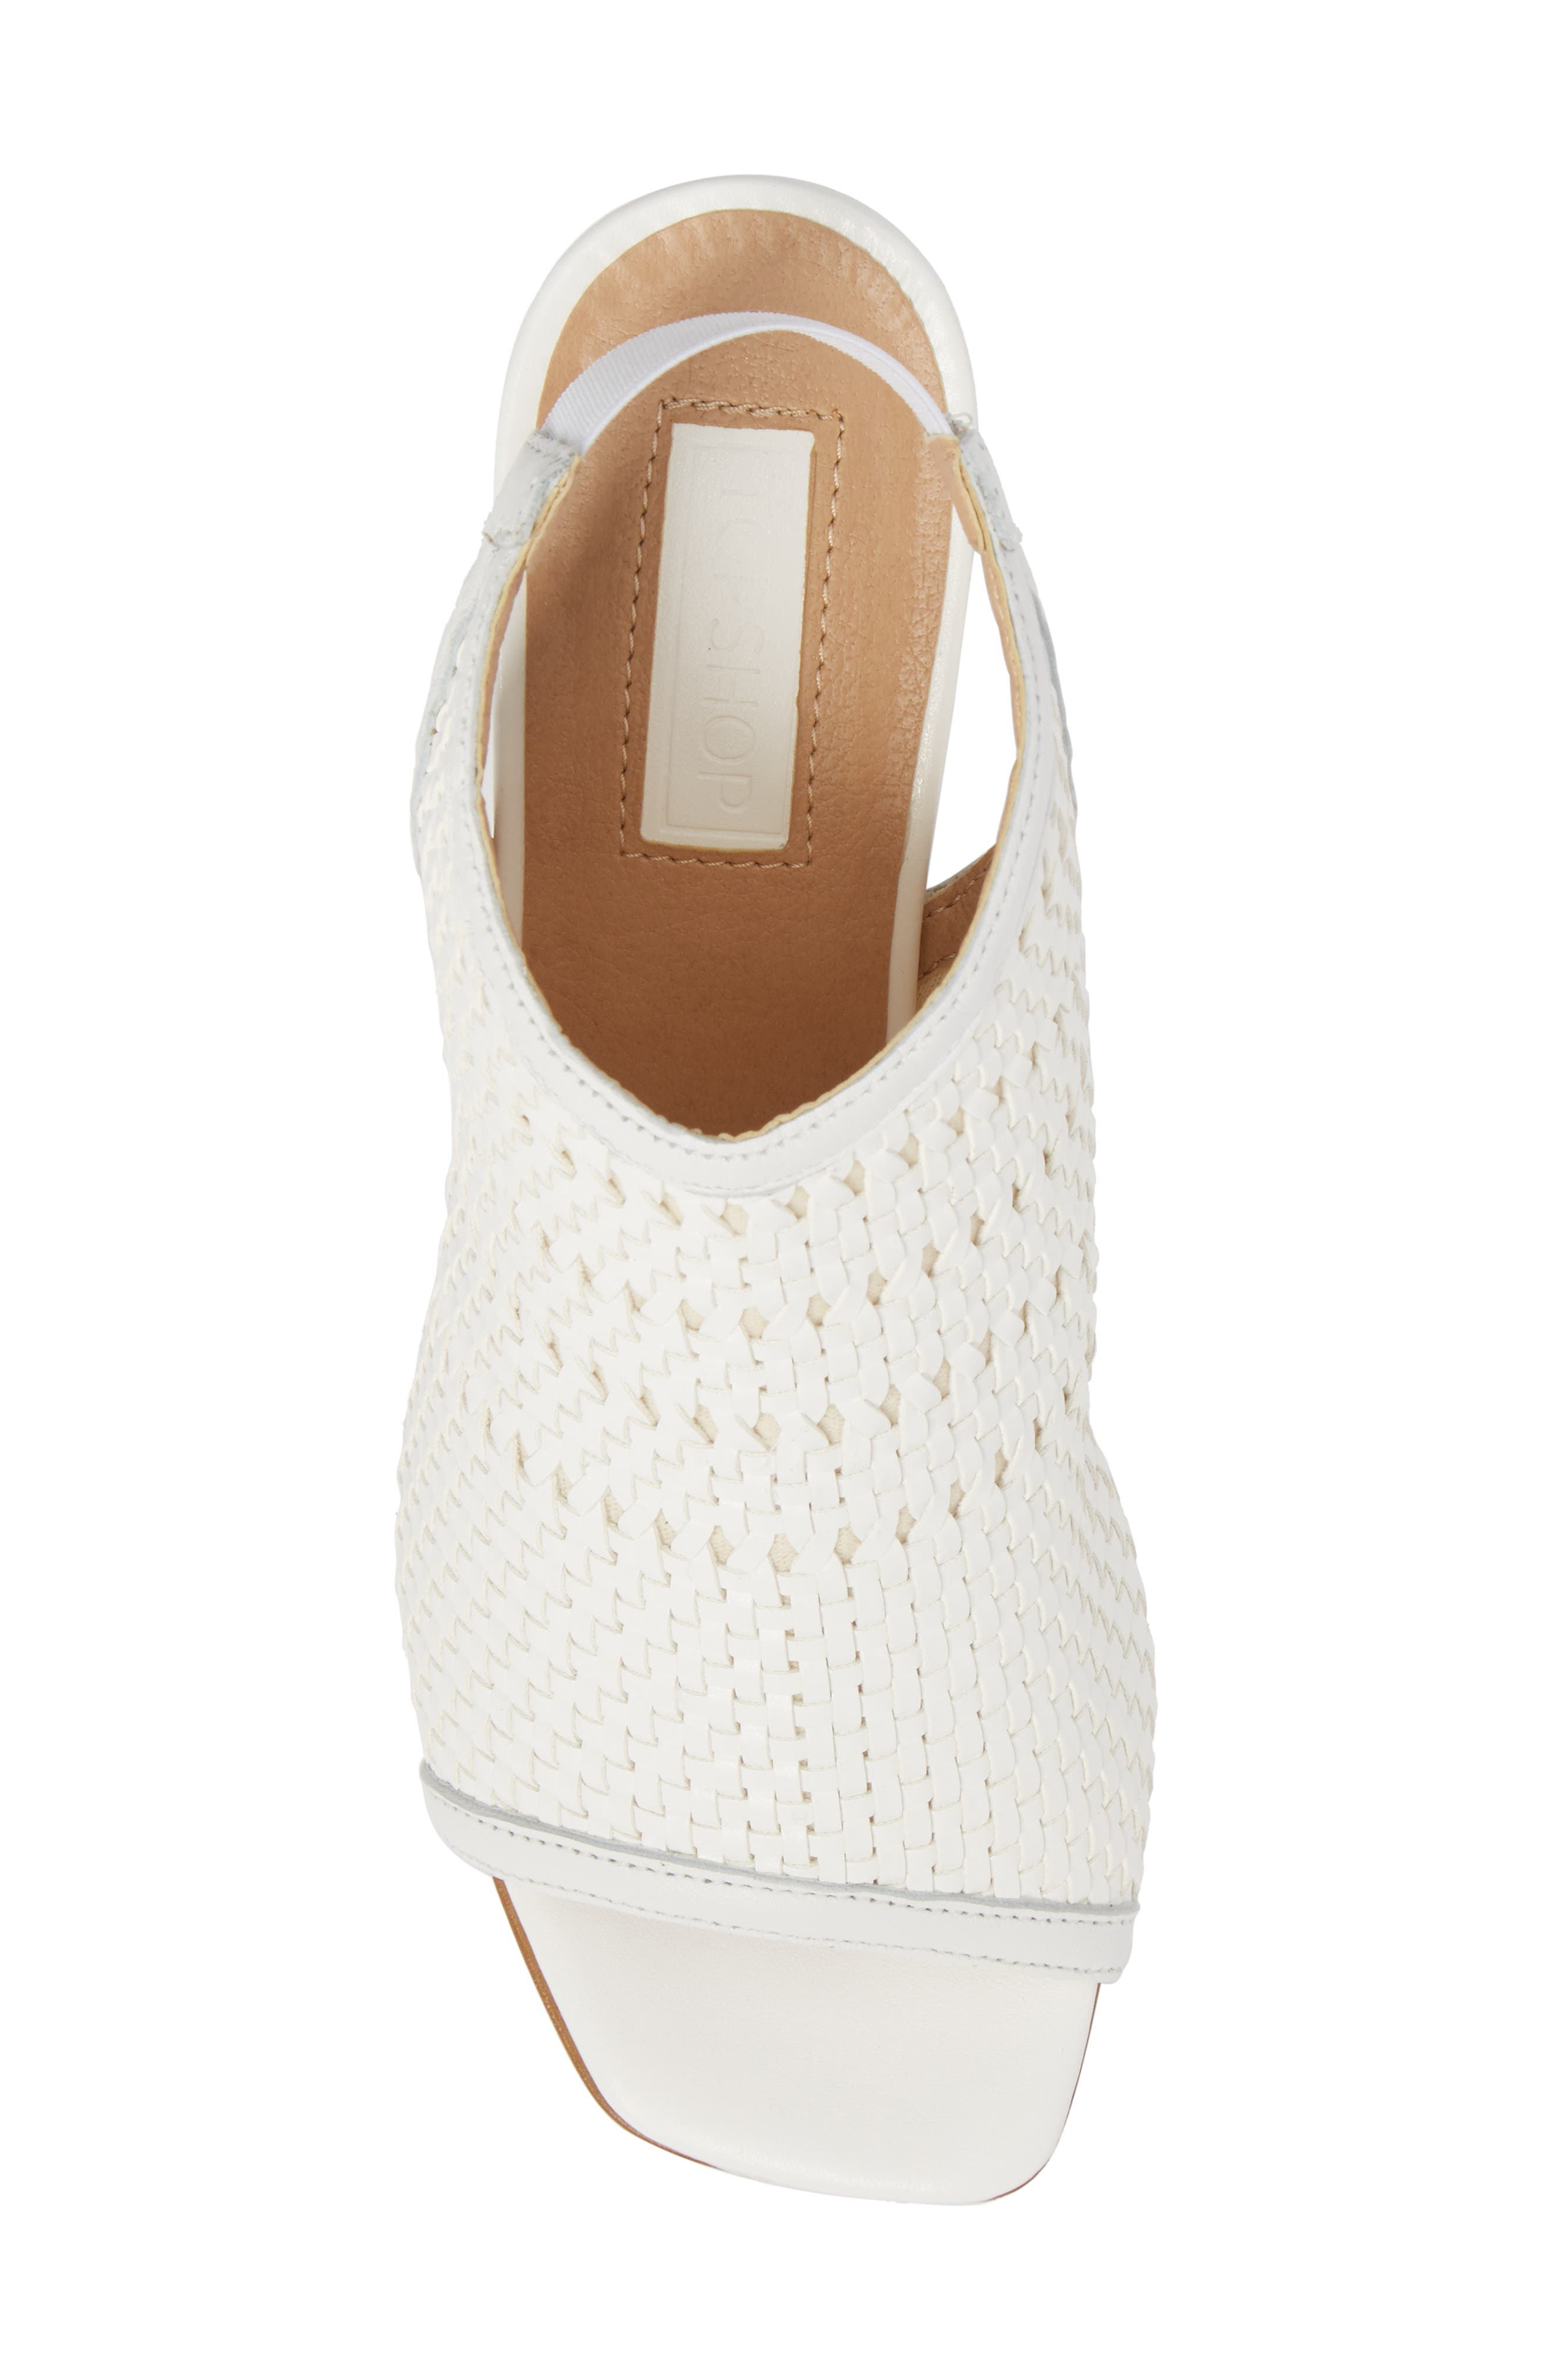 Nifty Woven Flared Heel Sandal,                             Alternate thumbnail 10, color,